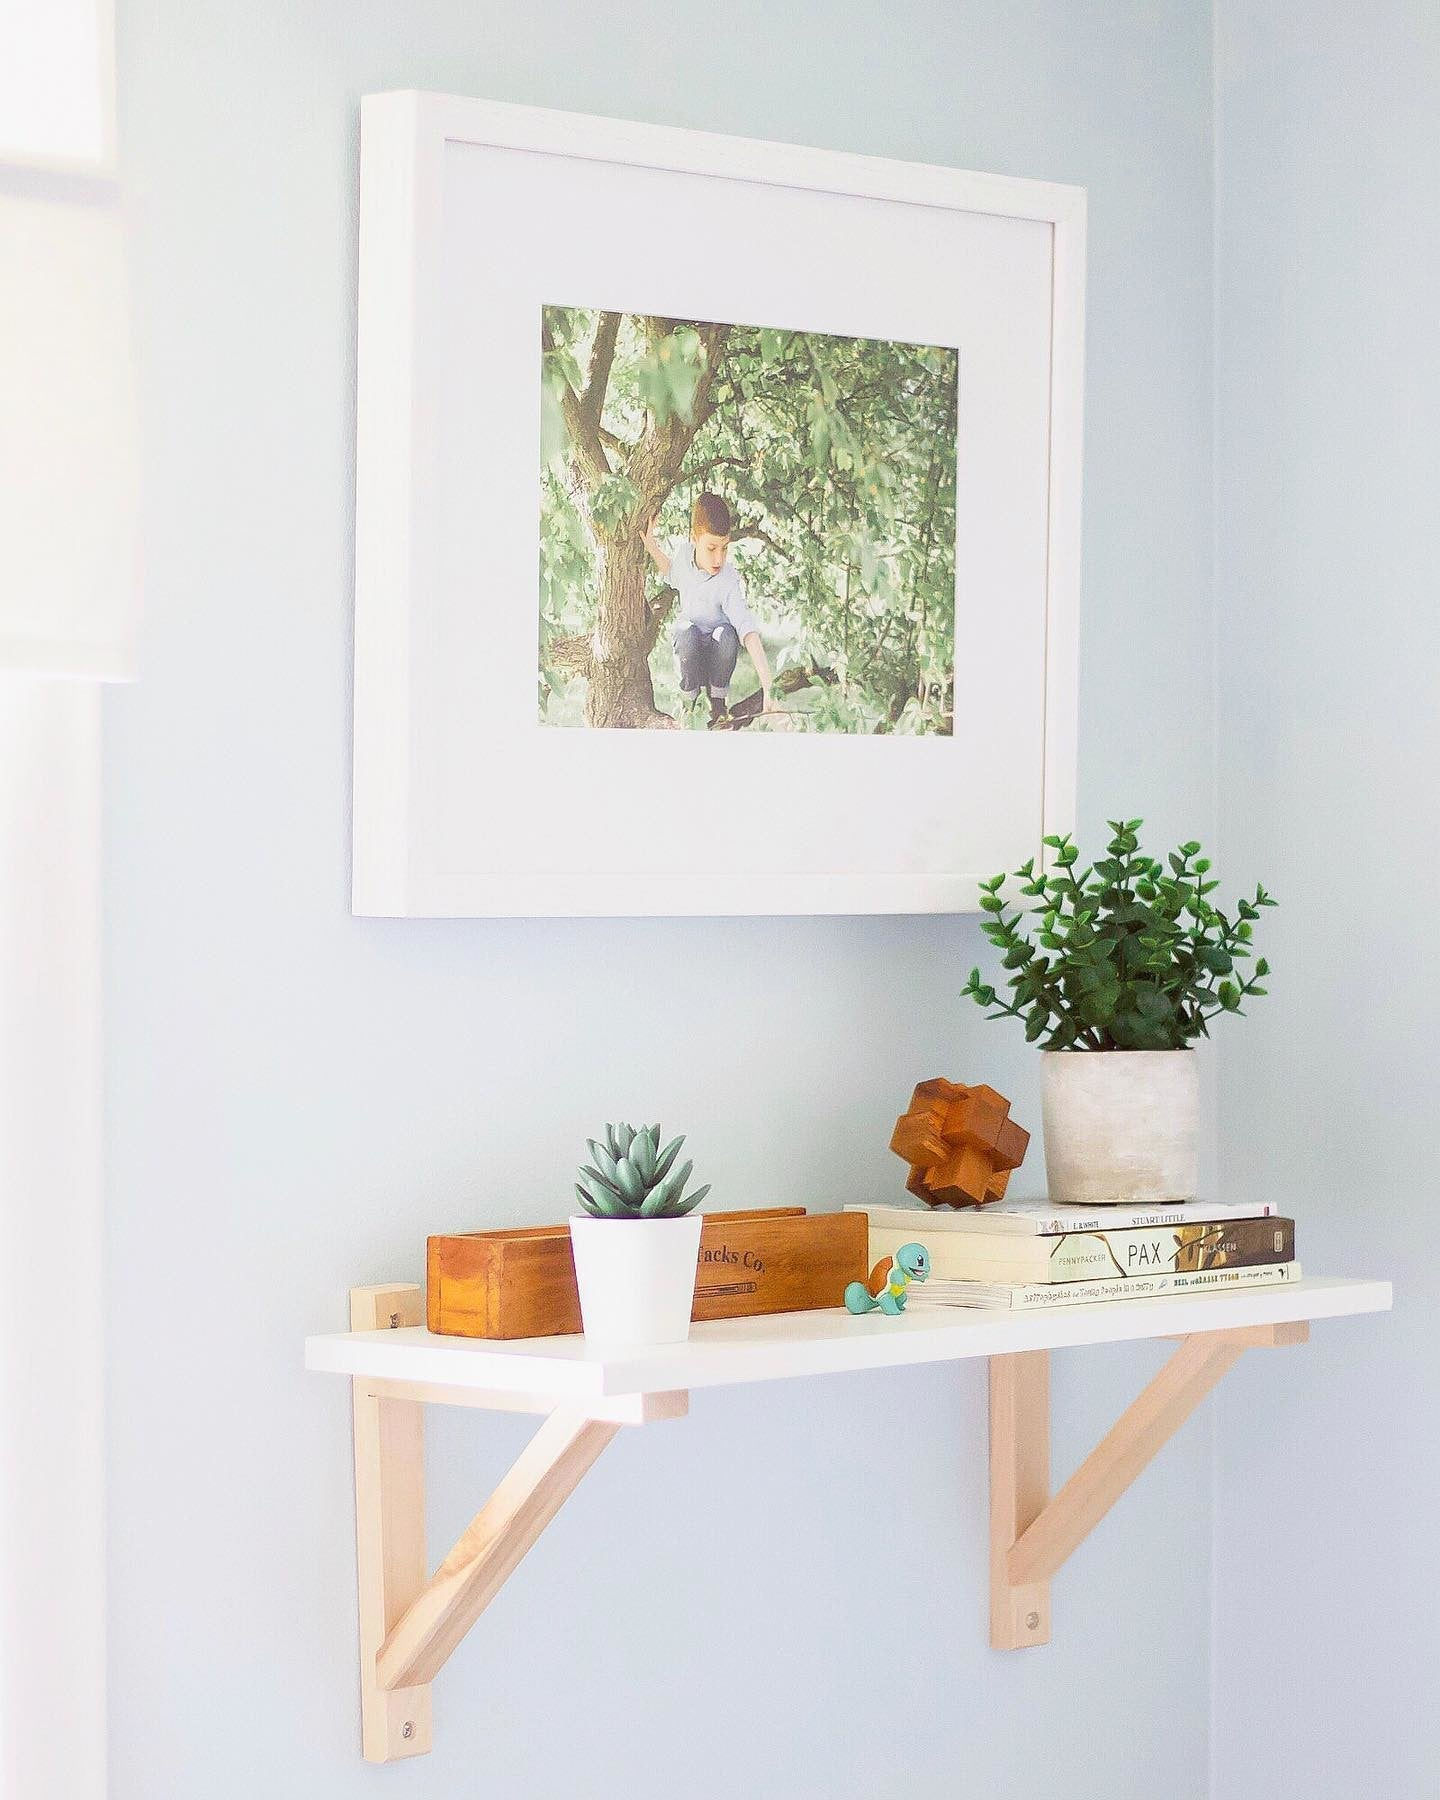 Photo Print on Display in a White Frame